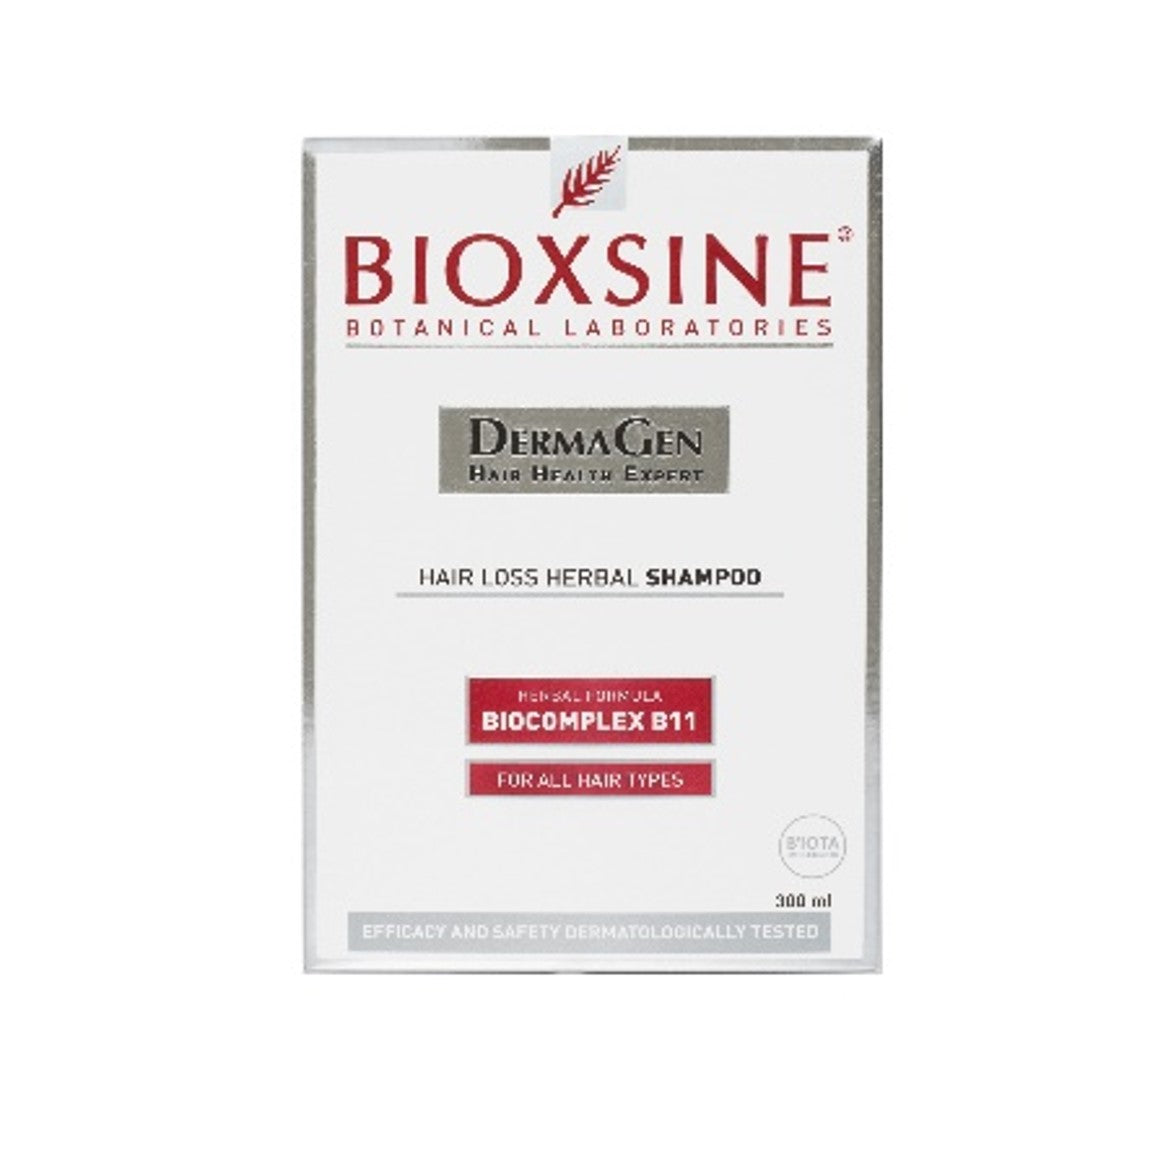 Bioxsine Shampoo Normal/Dry Hair